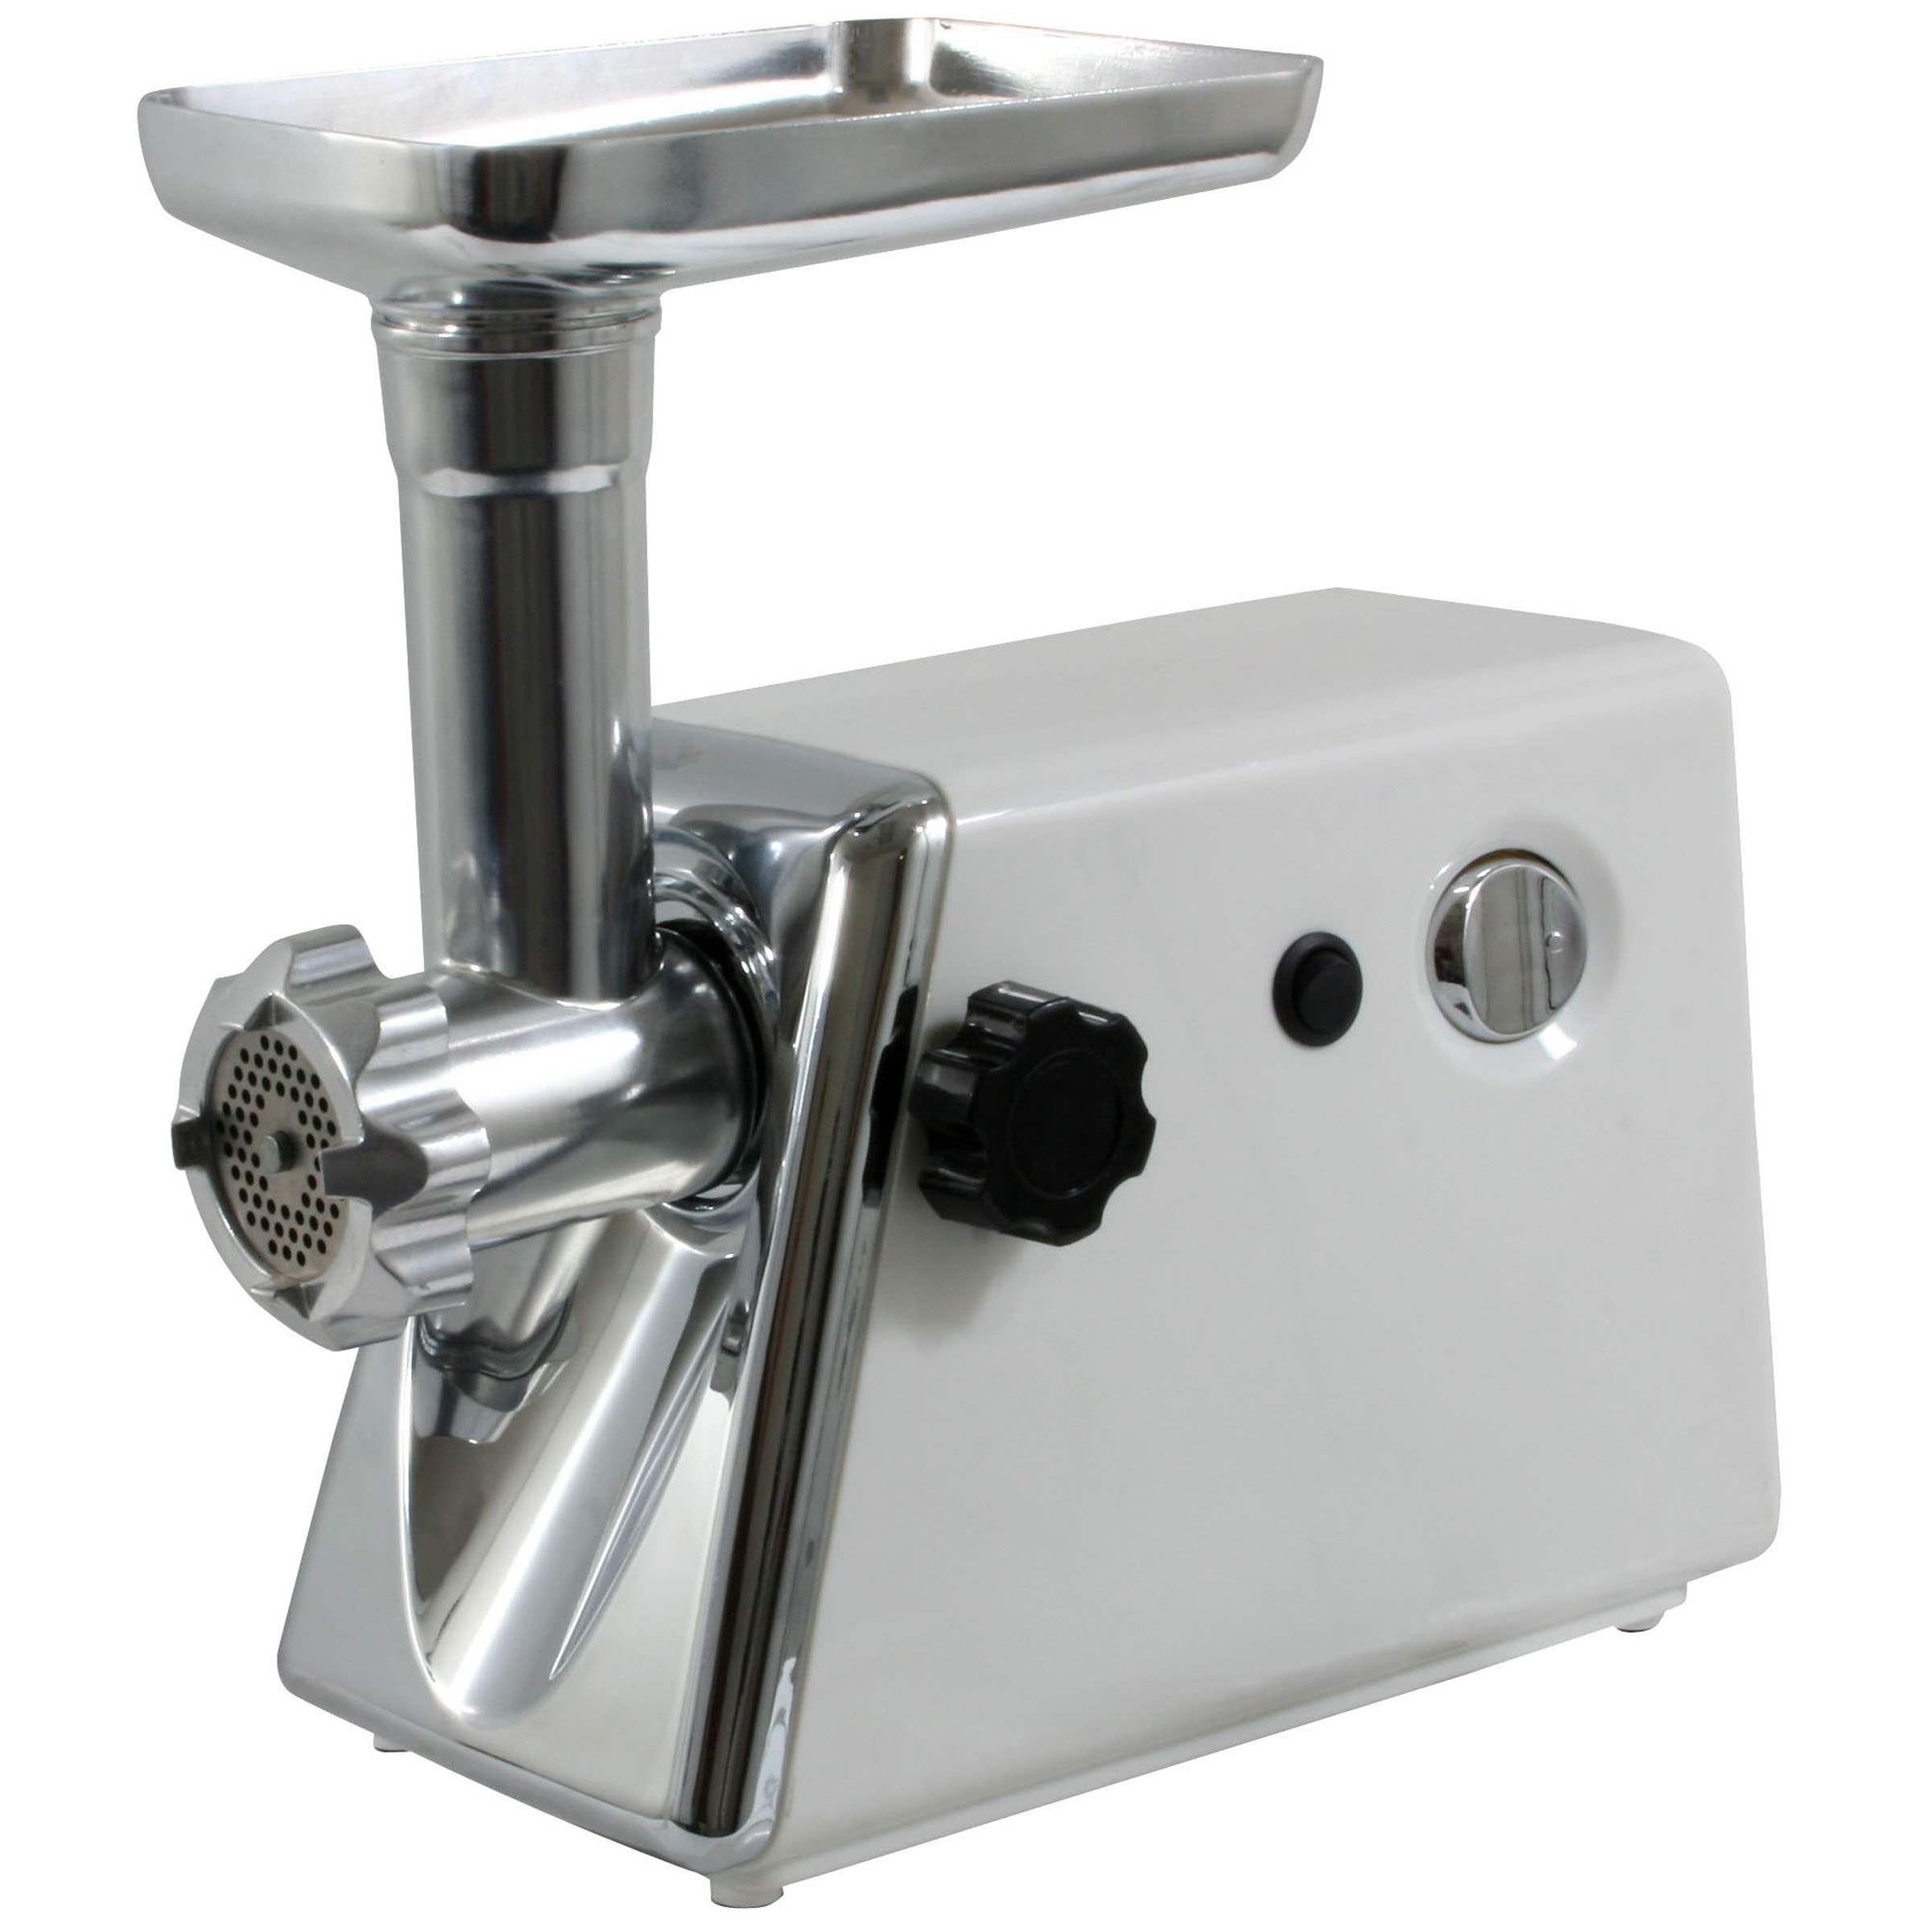 Sportsman MEG300 3/4HP 350W Electric Meat Grinder with 3 Cutting Plates (Fine, Medium, & Course Grind) by Sportsman